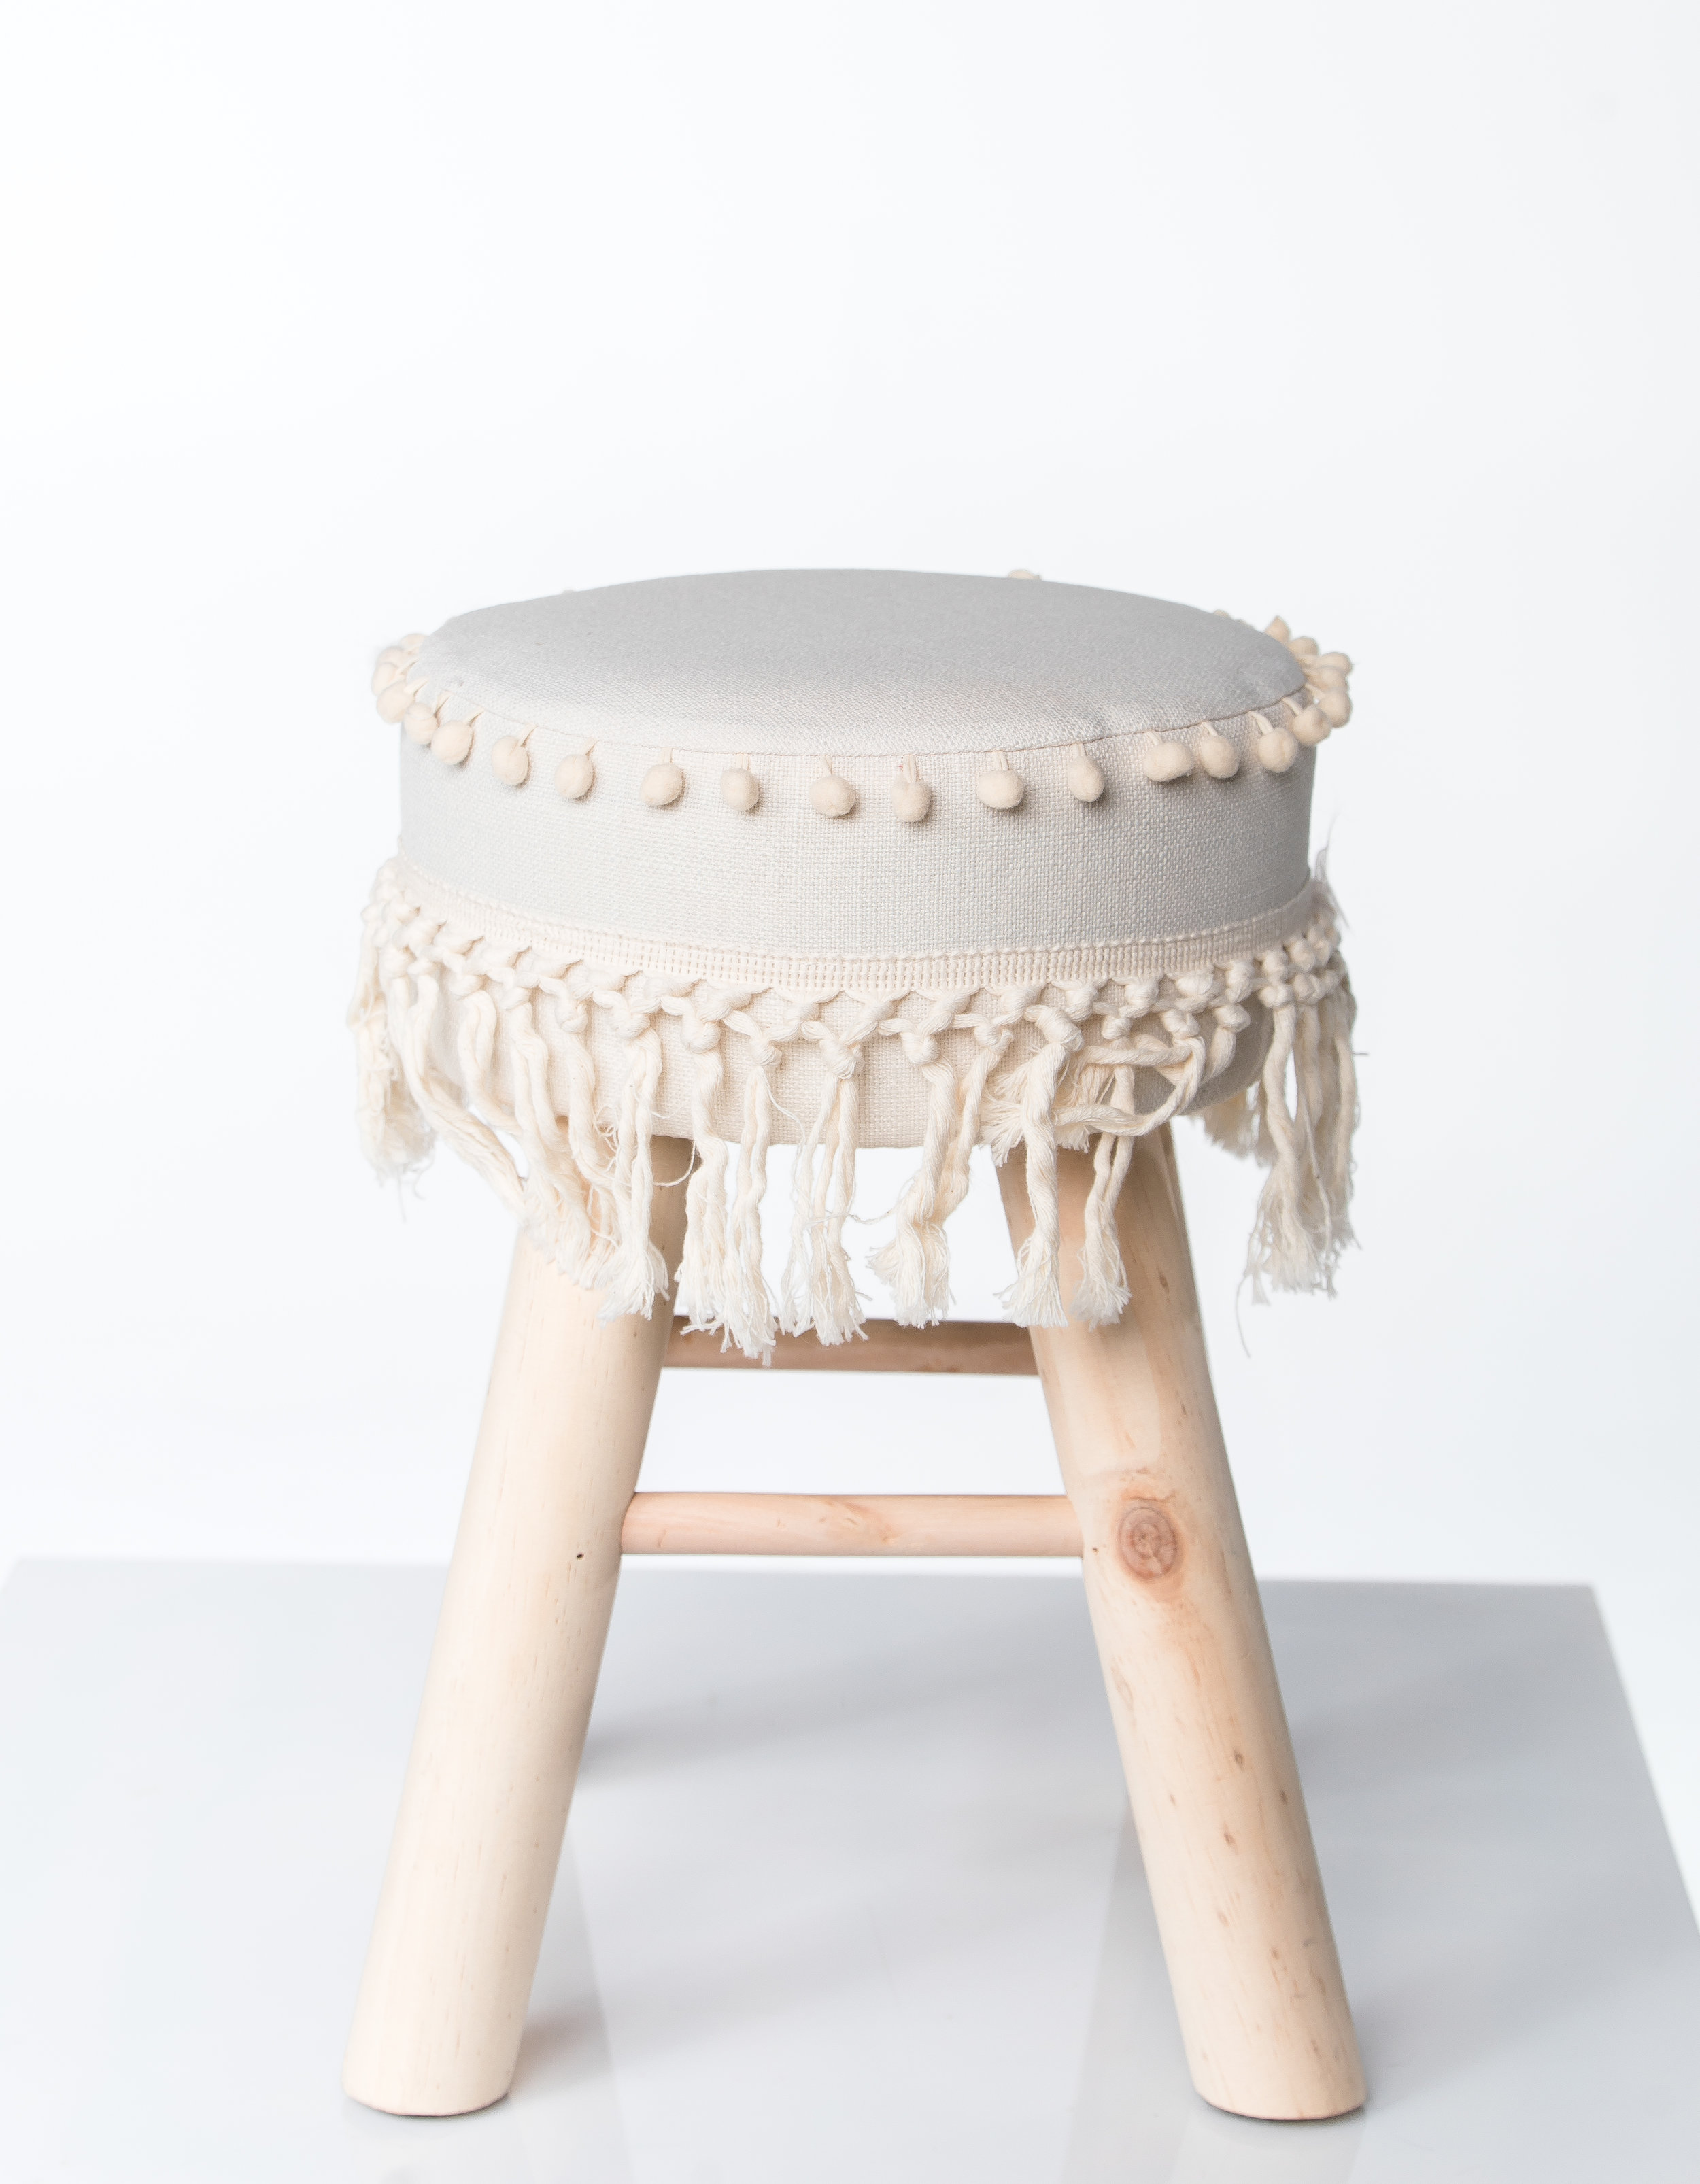 BOHO CHILDREN'S STOOL